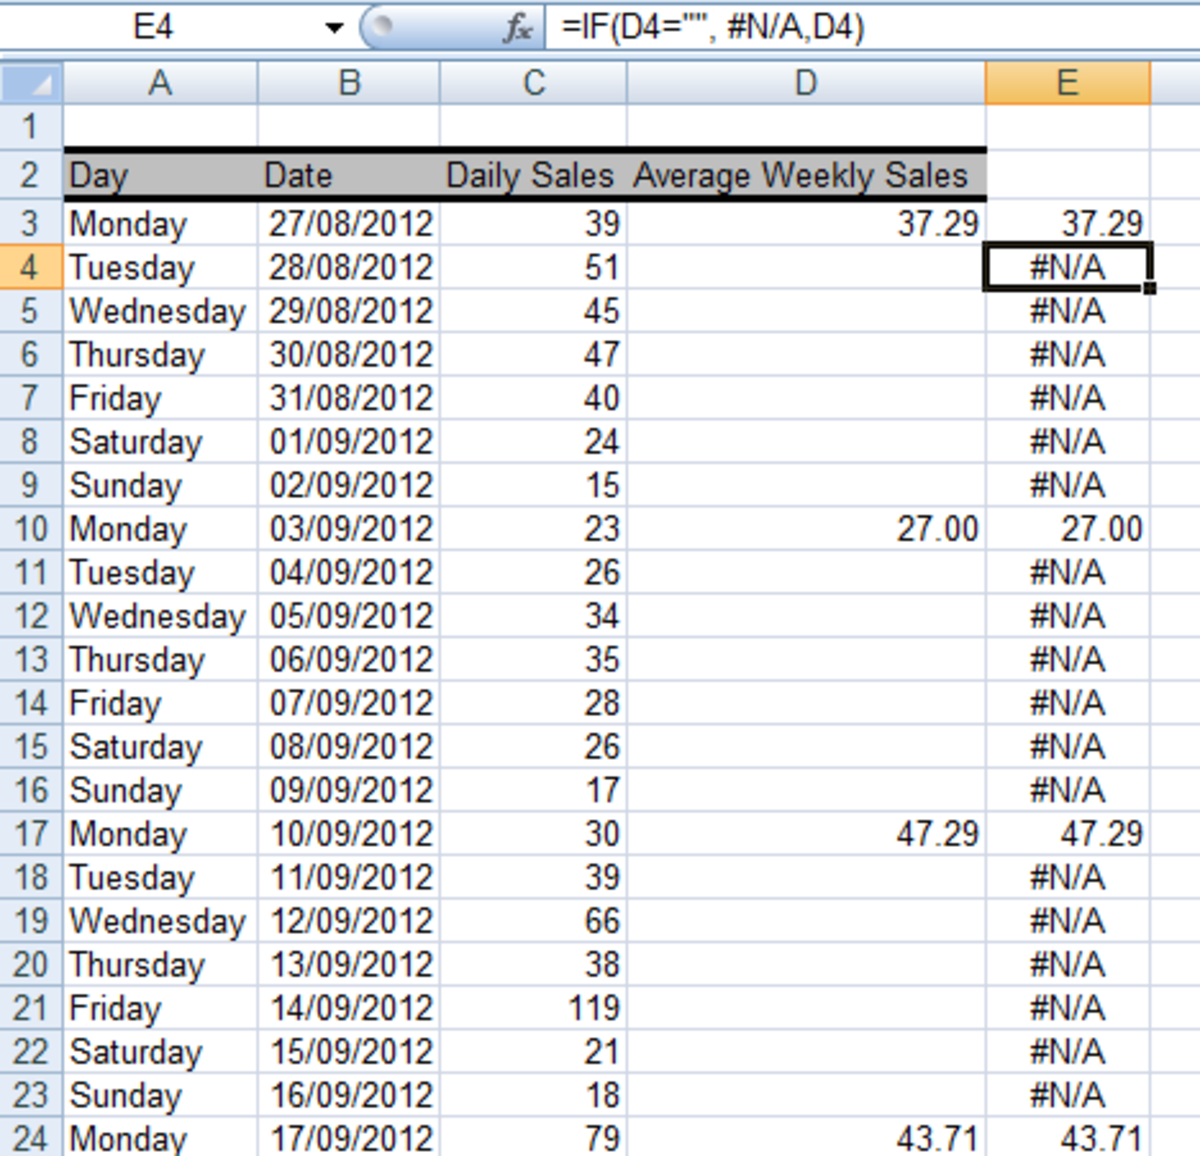 Ediblewildsus  Mesmerizing How To Get Excel  And  To Ignore Empty Cells In A Chart Or  With Gorgeous Using The If Function In A Formula To Convert Empty Cells To Na With Charming Pareto Analysis In Excel Also Excel Vba End In Addition Nested If Formula Excel And Practice Excel Data As Well As Hyatt Excel Saga Additionally Excel Double Quotes From Turbofuturecom With Ediblewildsus  Gorgeous How To Get Excel  And  To Ignore Empty Cells In A Chart Or  With Charming Using The If Function In A Formula To Convert Empty Cells To Na And Mesmerizing Pareto Analysis In Excel Also Excel Vba End In Addition Nested If Formula Excel From Turbofuturecom